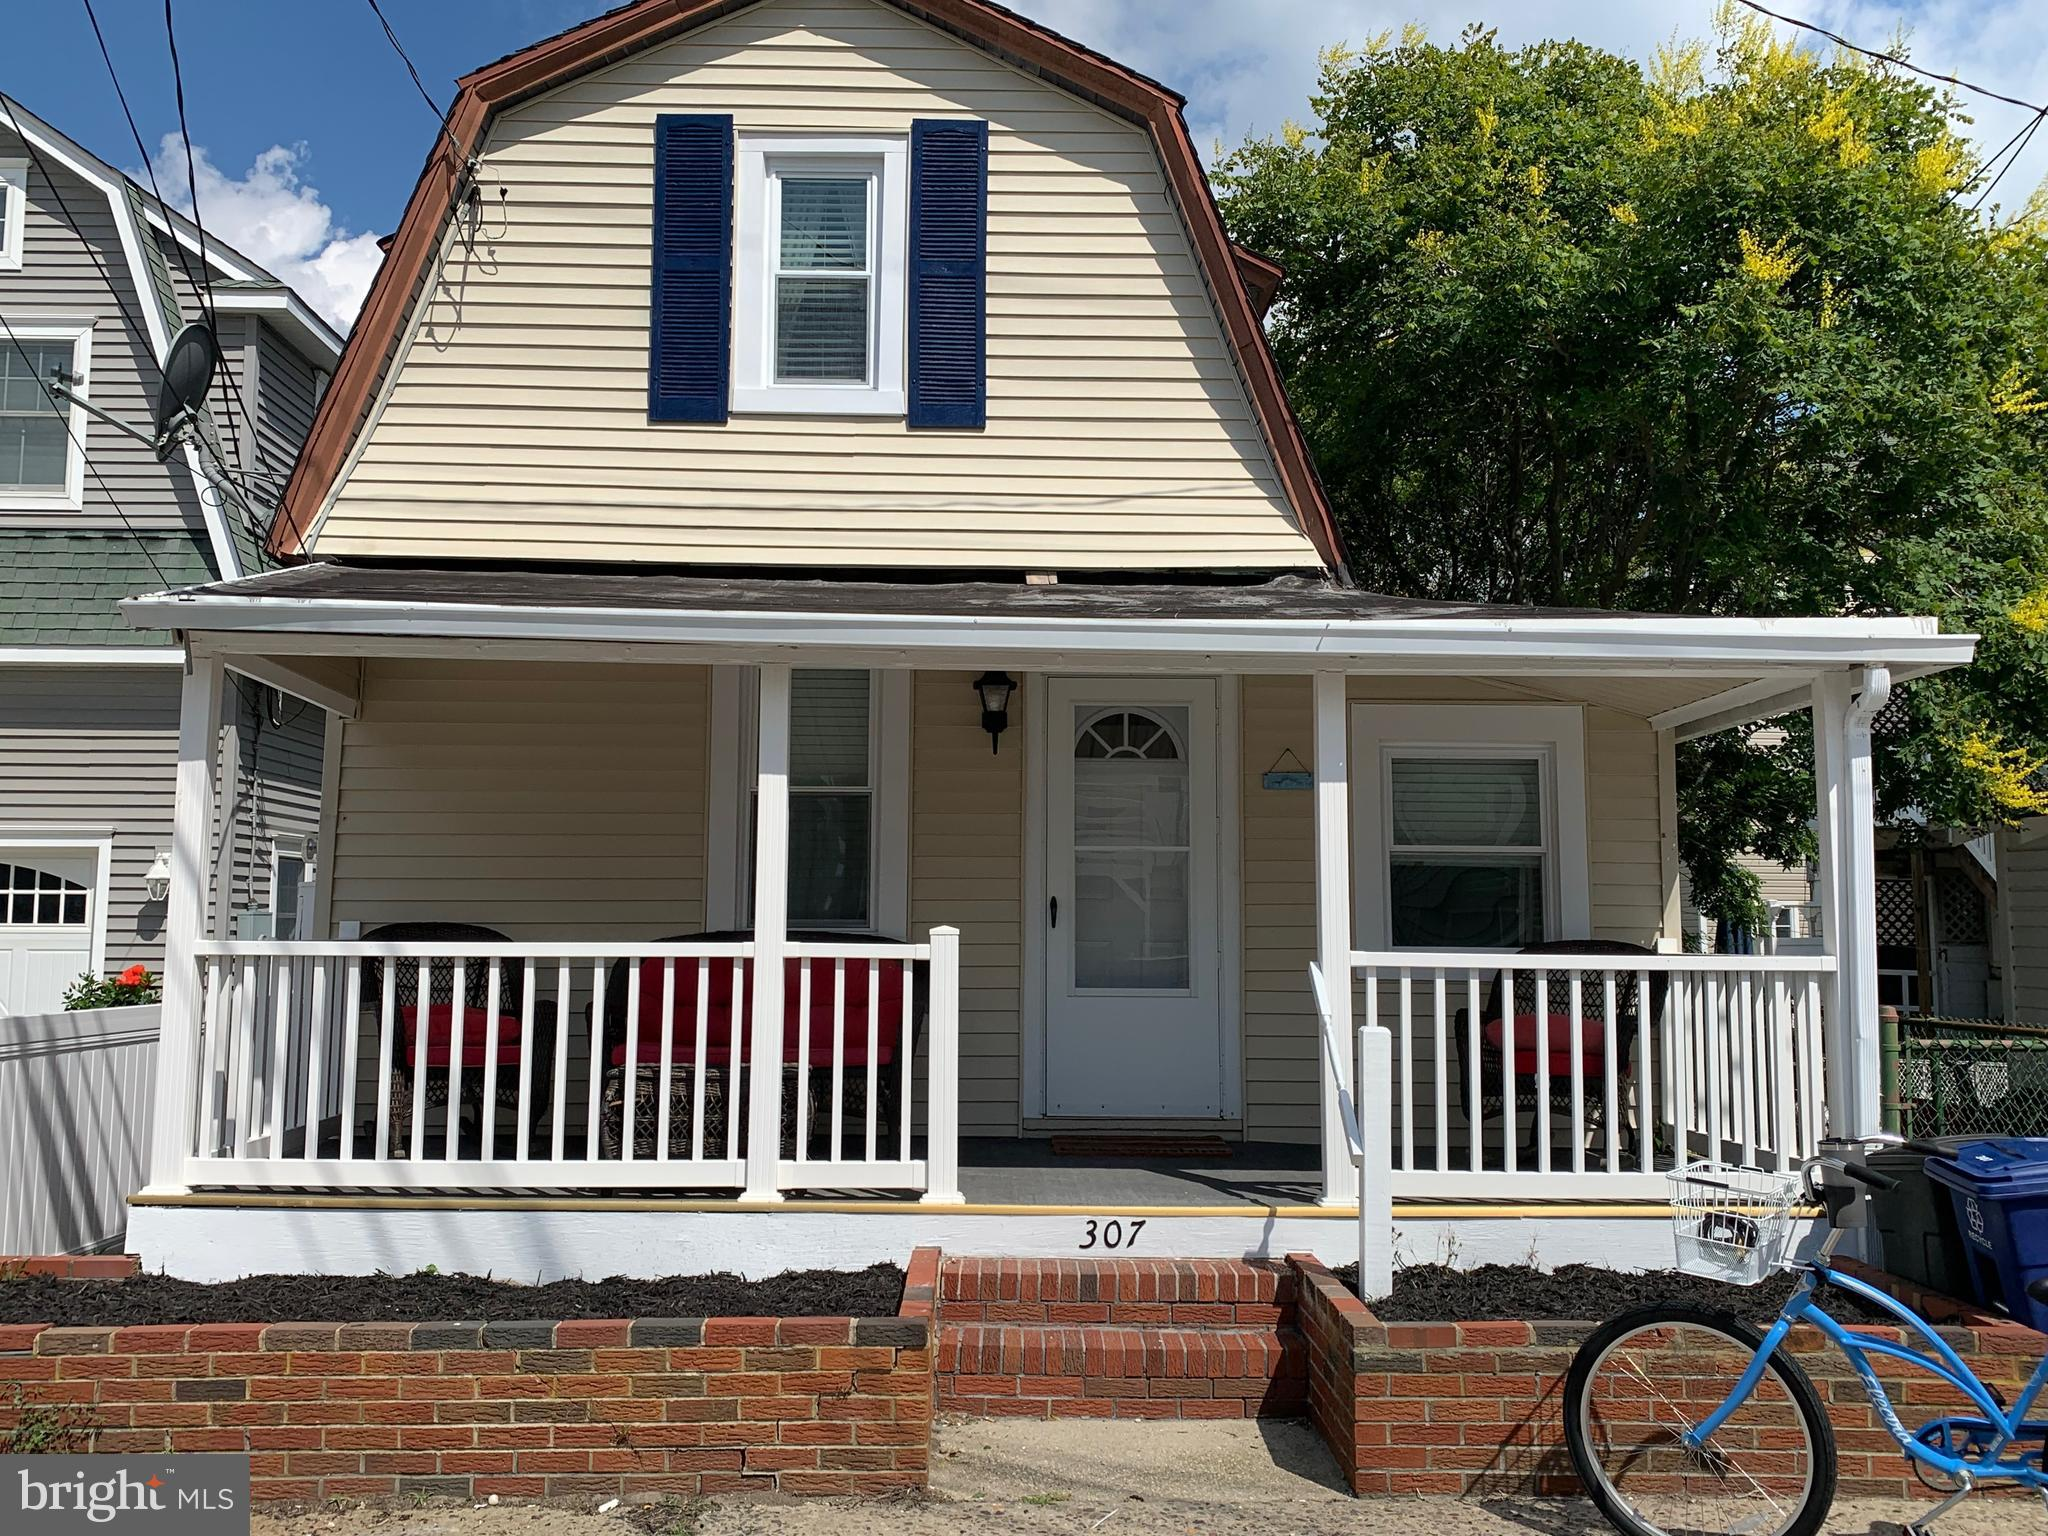 307 OCEAN AVENUE, OCEAN CITY, NJ 08226